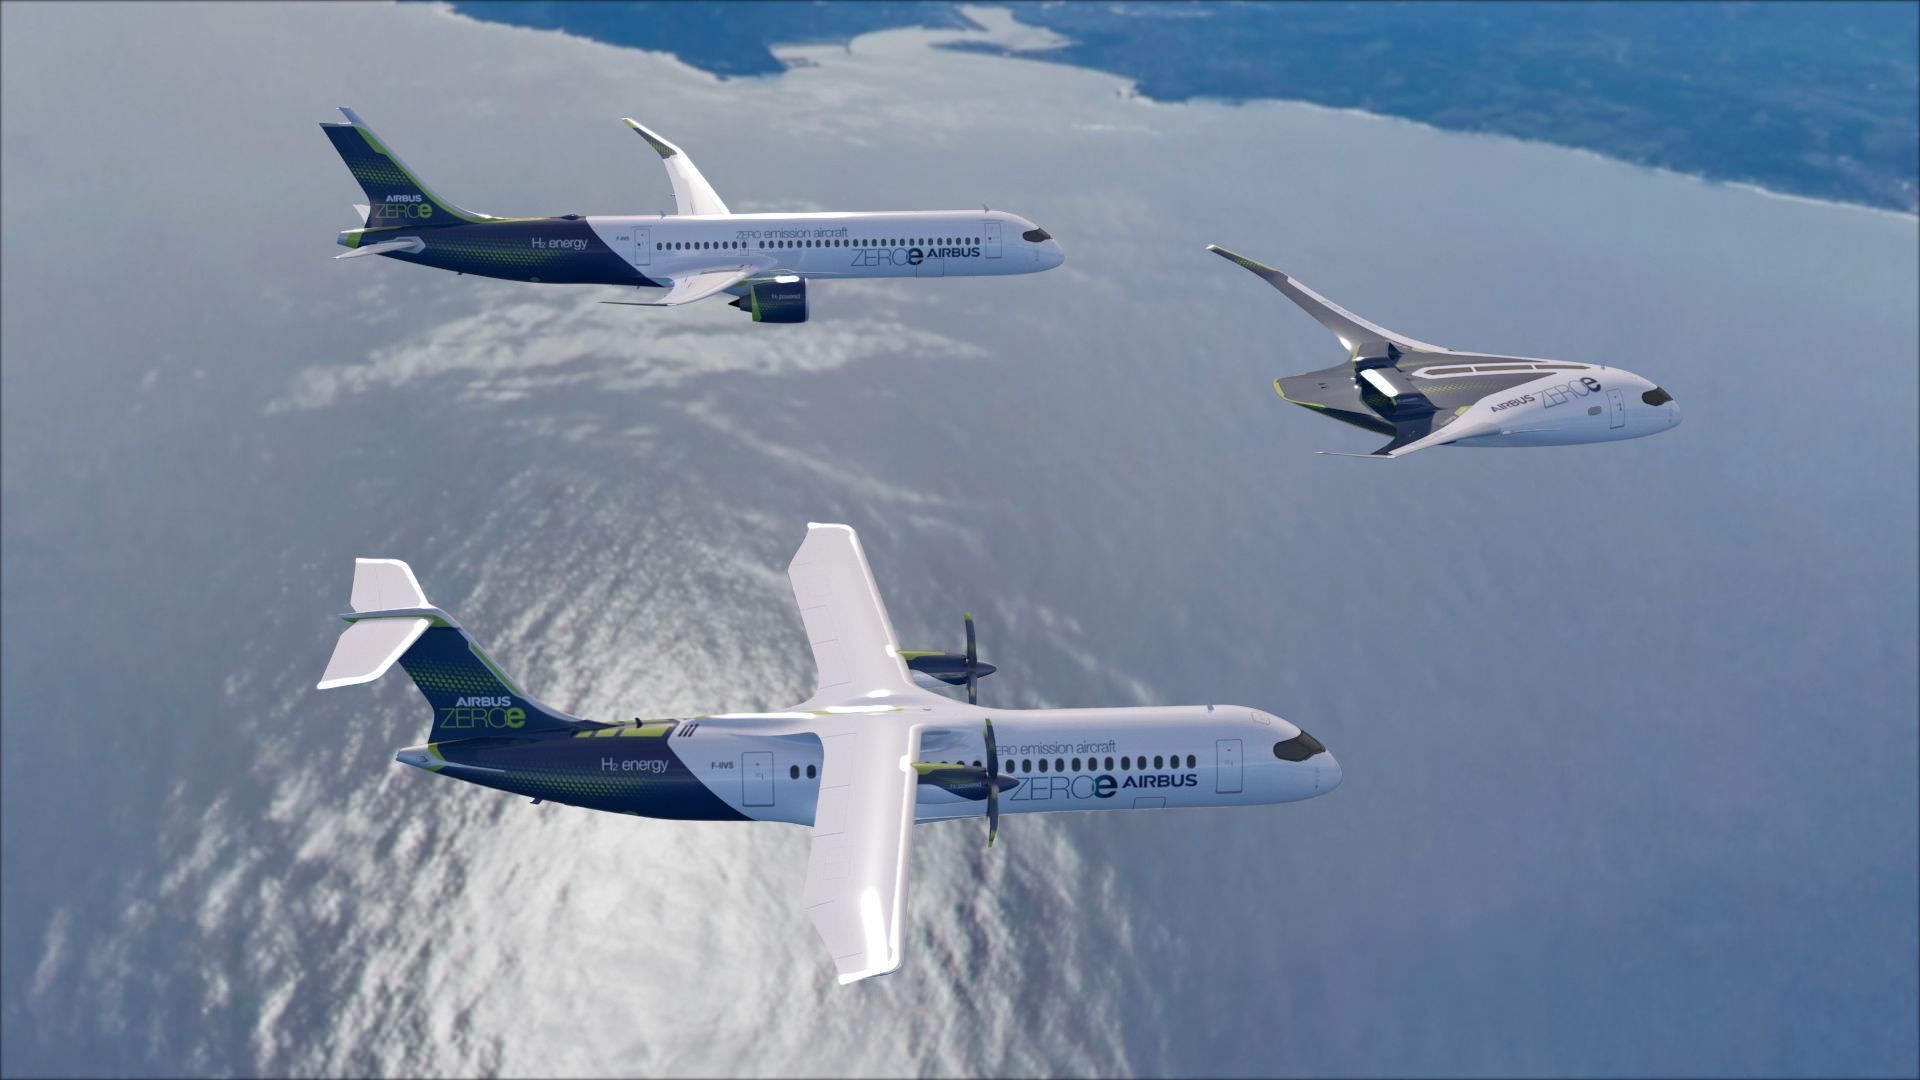 Airbus' hydrogen powered concept aircraft